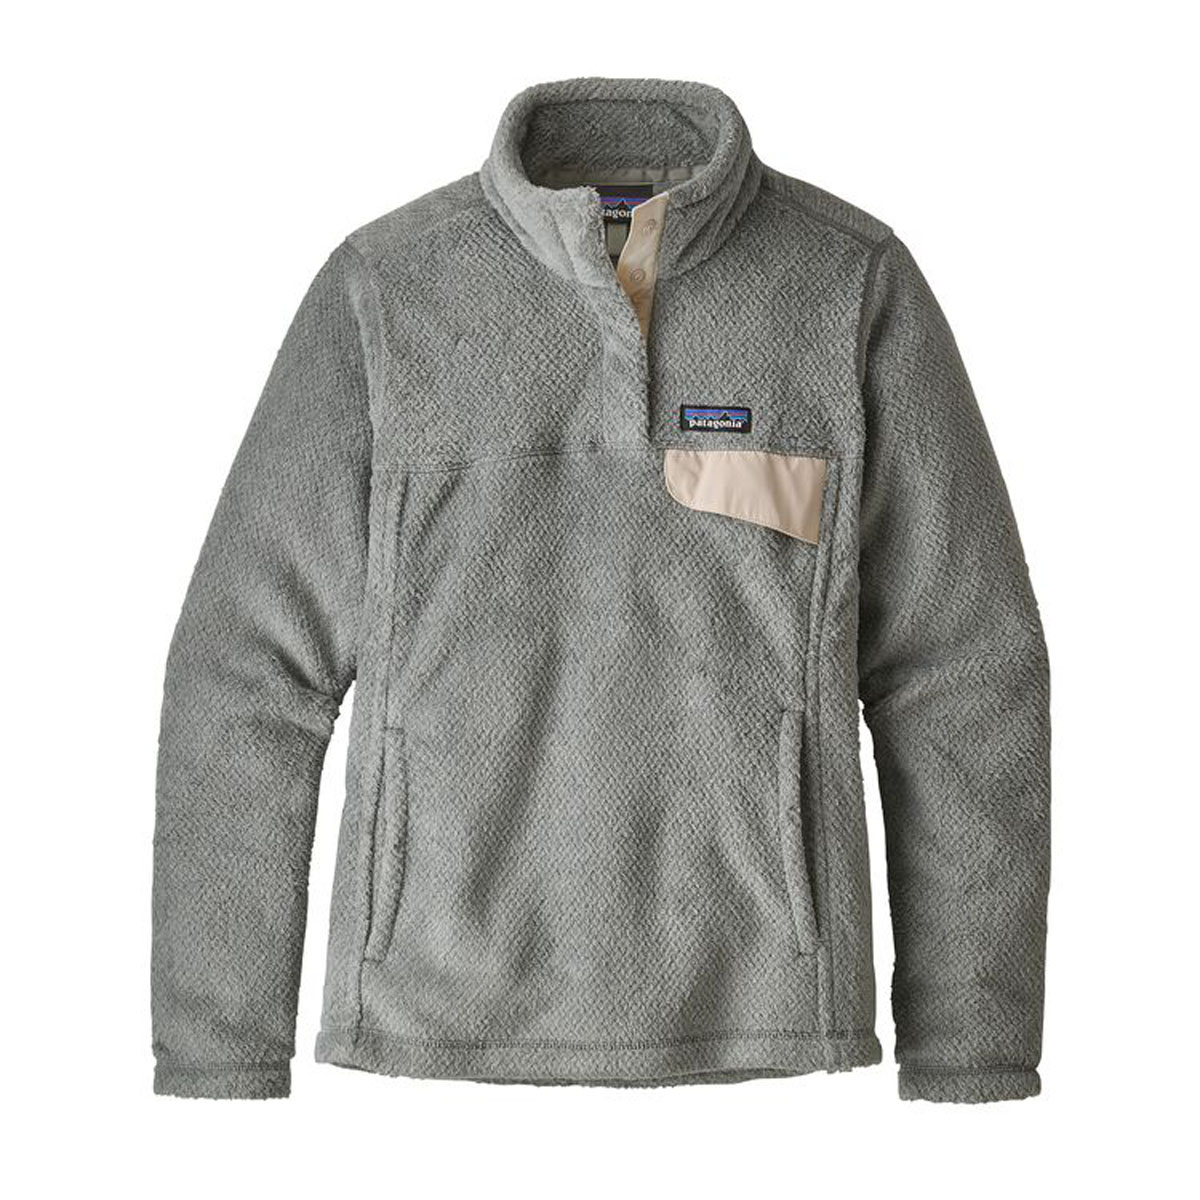 PATAGONIA WOMEN'S RE-TOOL SNAP-T FLEECE PULLOVER (25443)